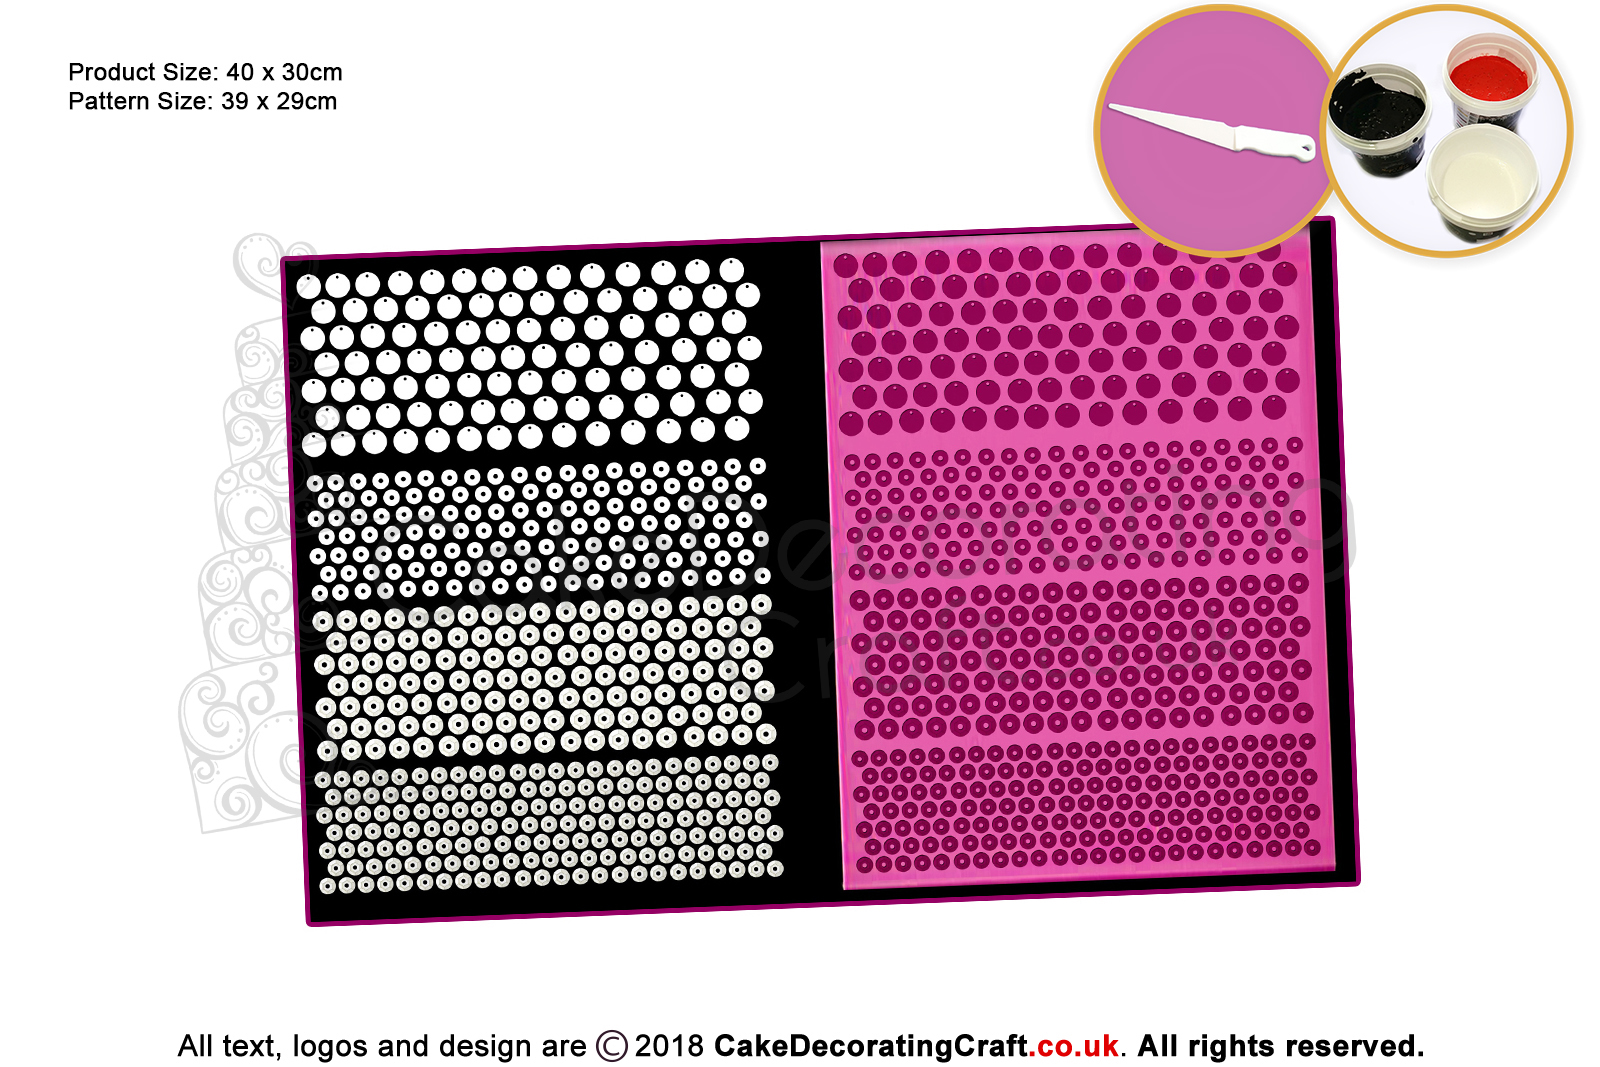 3d Sequin Cake Lace Mat Cake Decorating Starter Kit Cake